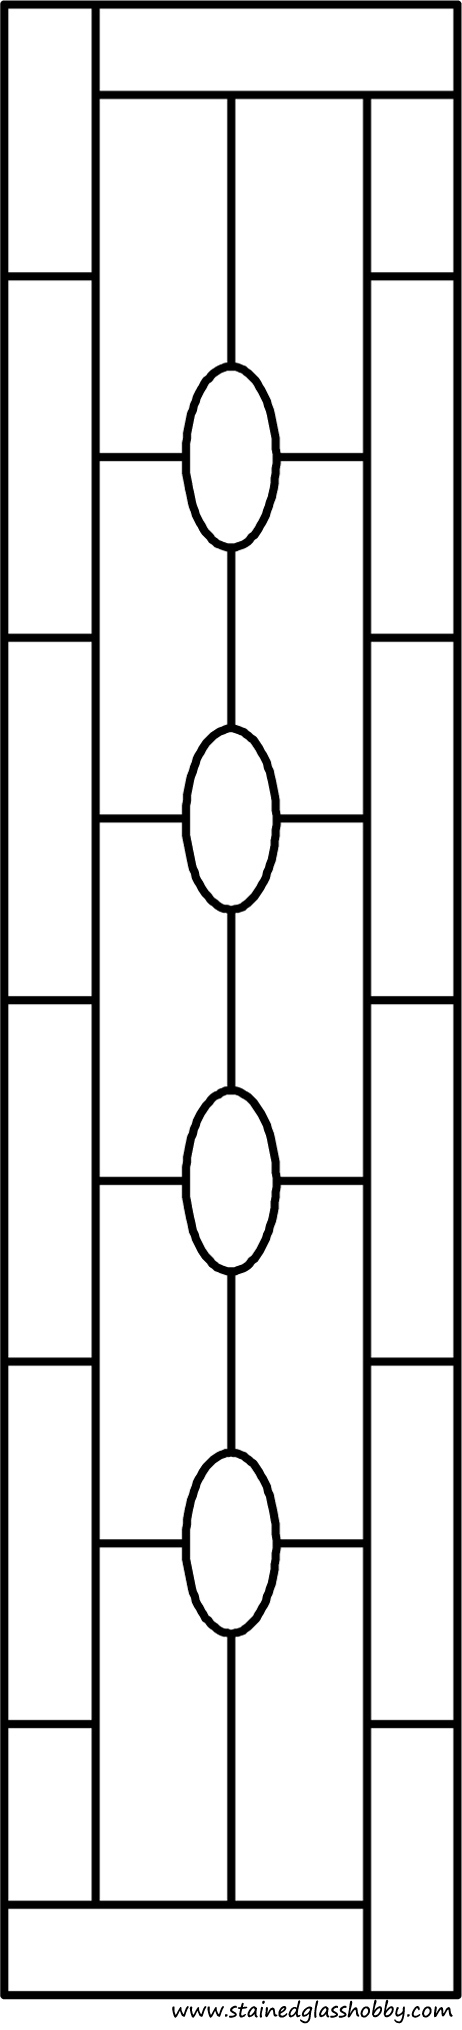 Rectangular panel for stained glass pattern 3